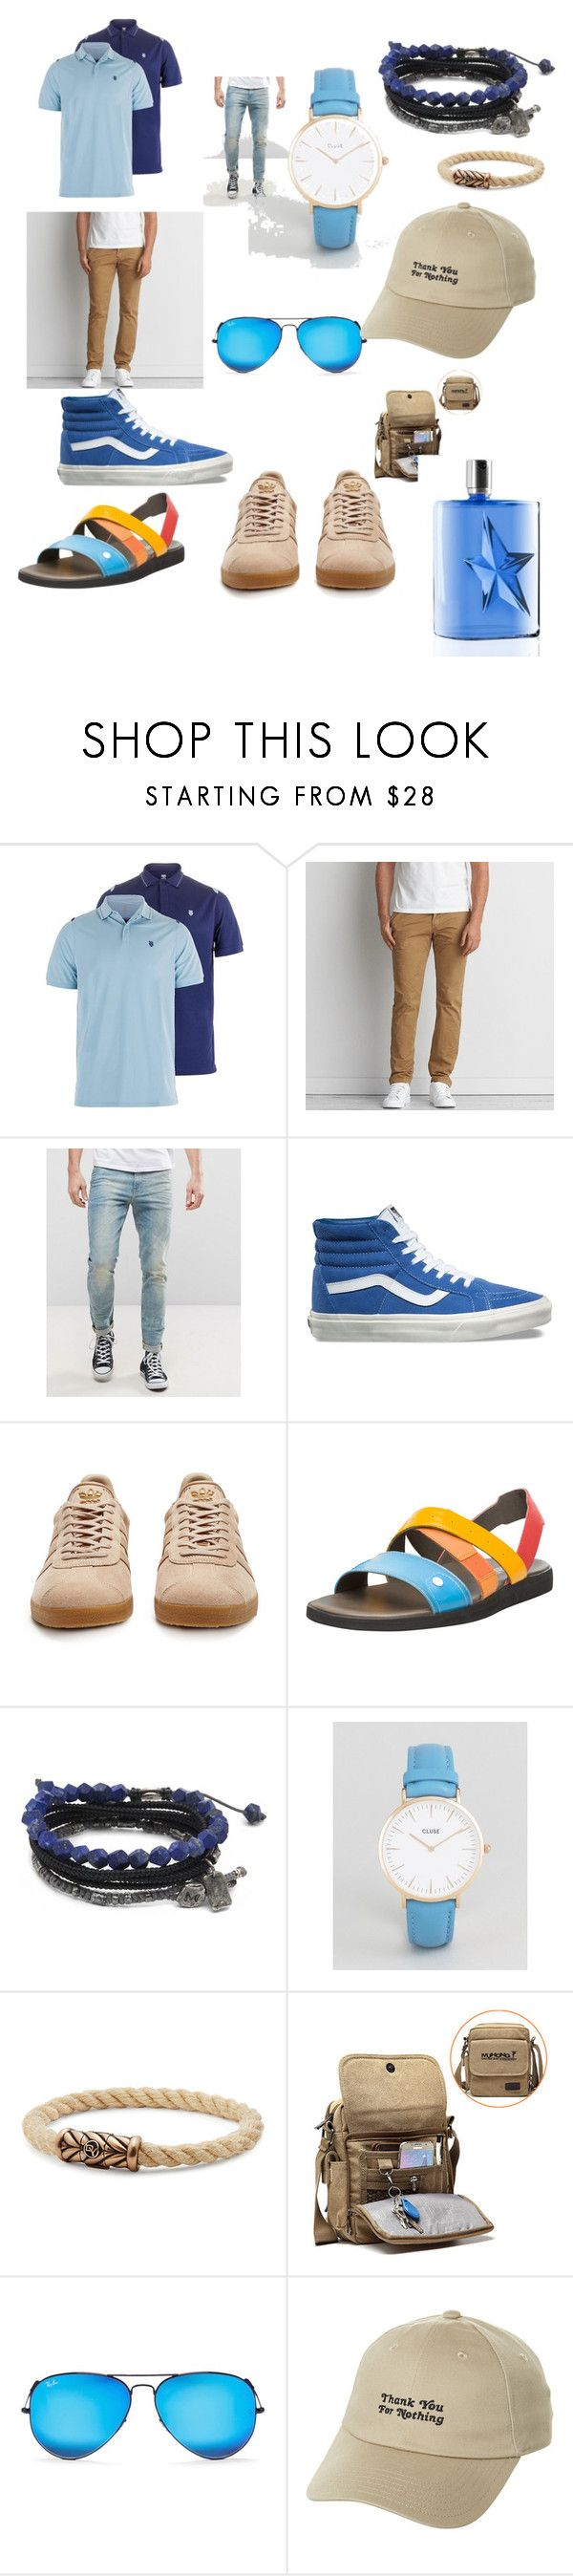 """#be #cool#fun#fashone#trend#moda#"" by hannazakaria ❤ liked on Polyvore featuring American Eagle Outfitters, ASOS, Vans, adidas Originals, Camper, M. Cohen, CLUSE, David Yurman, Ray-Ban and Thierry Mugler"